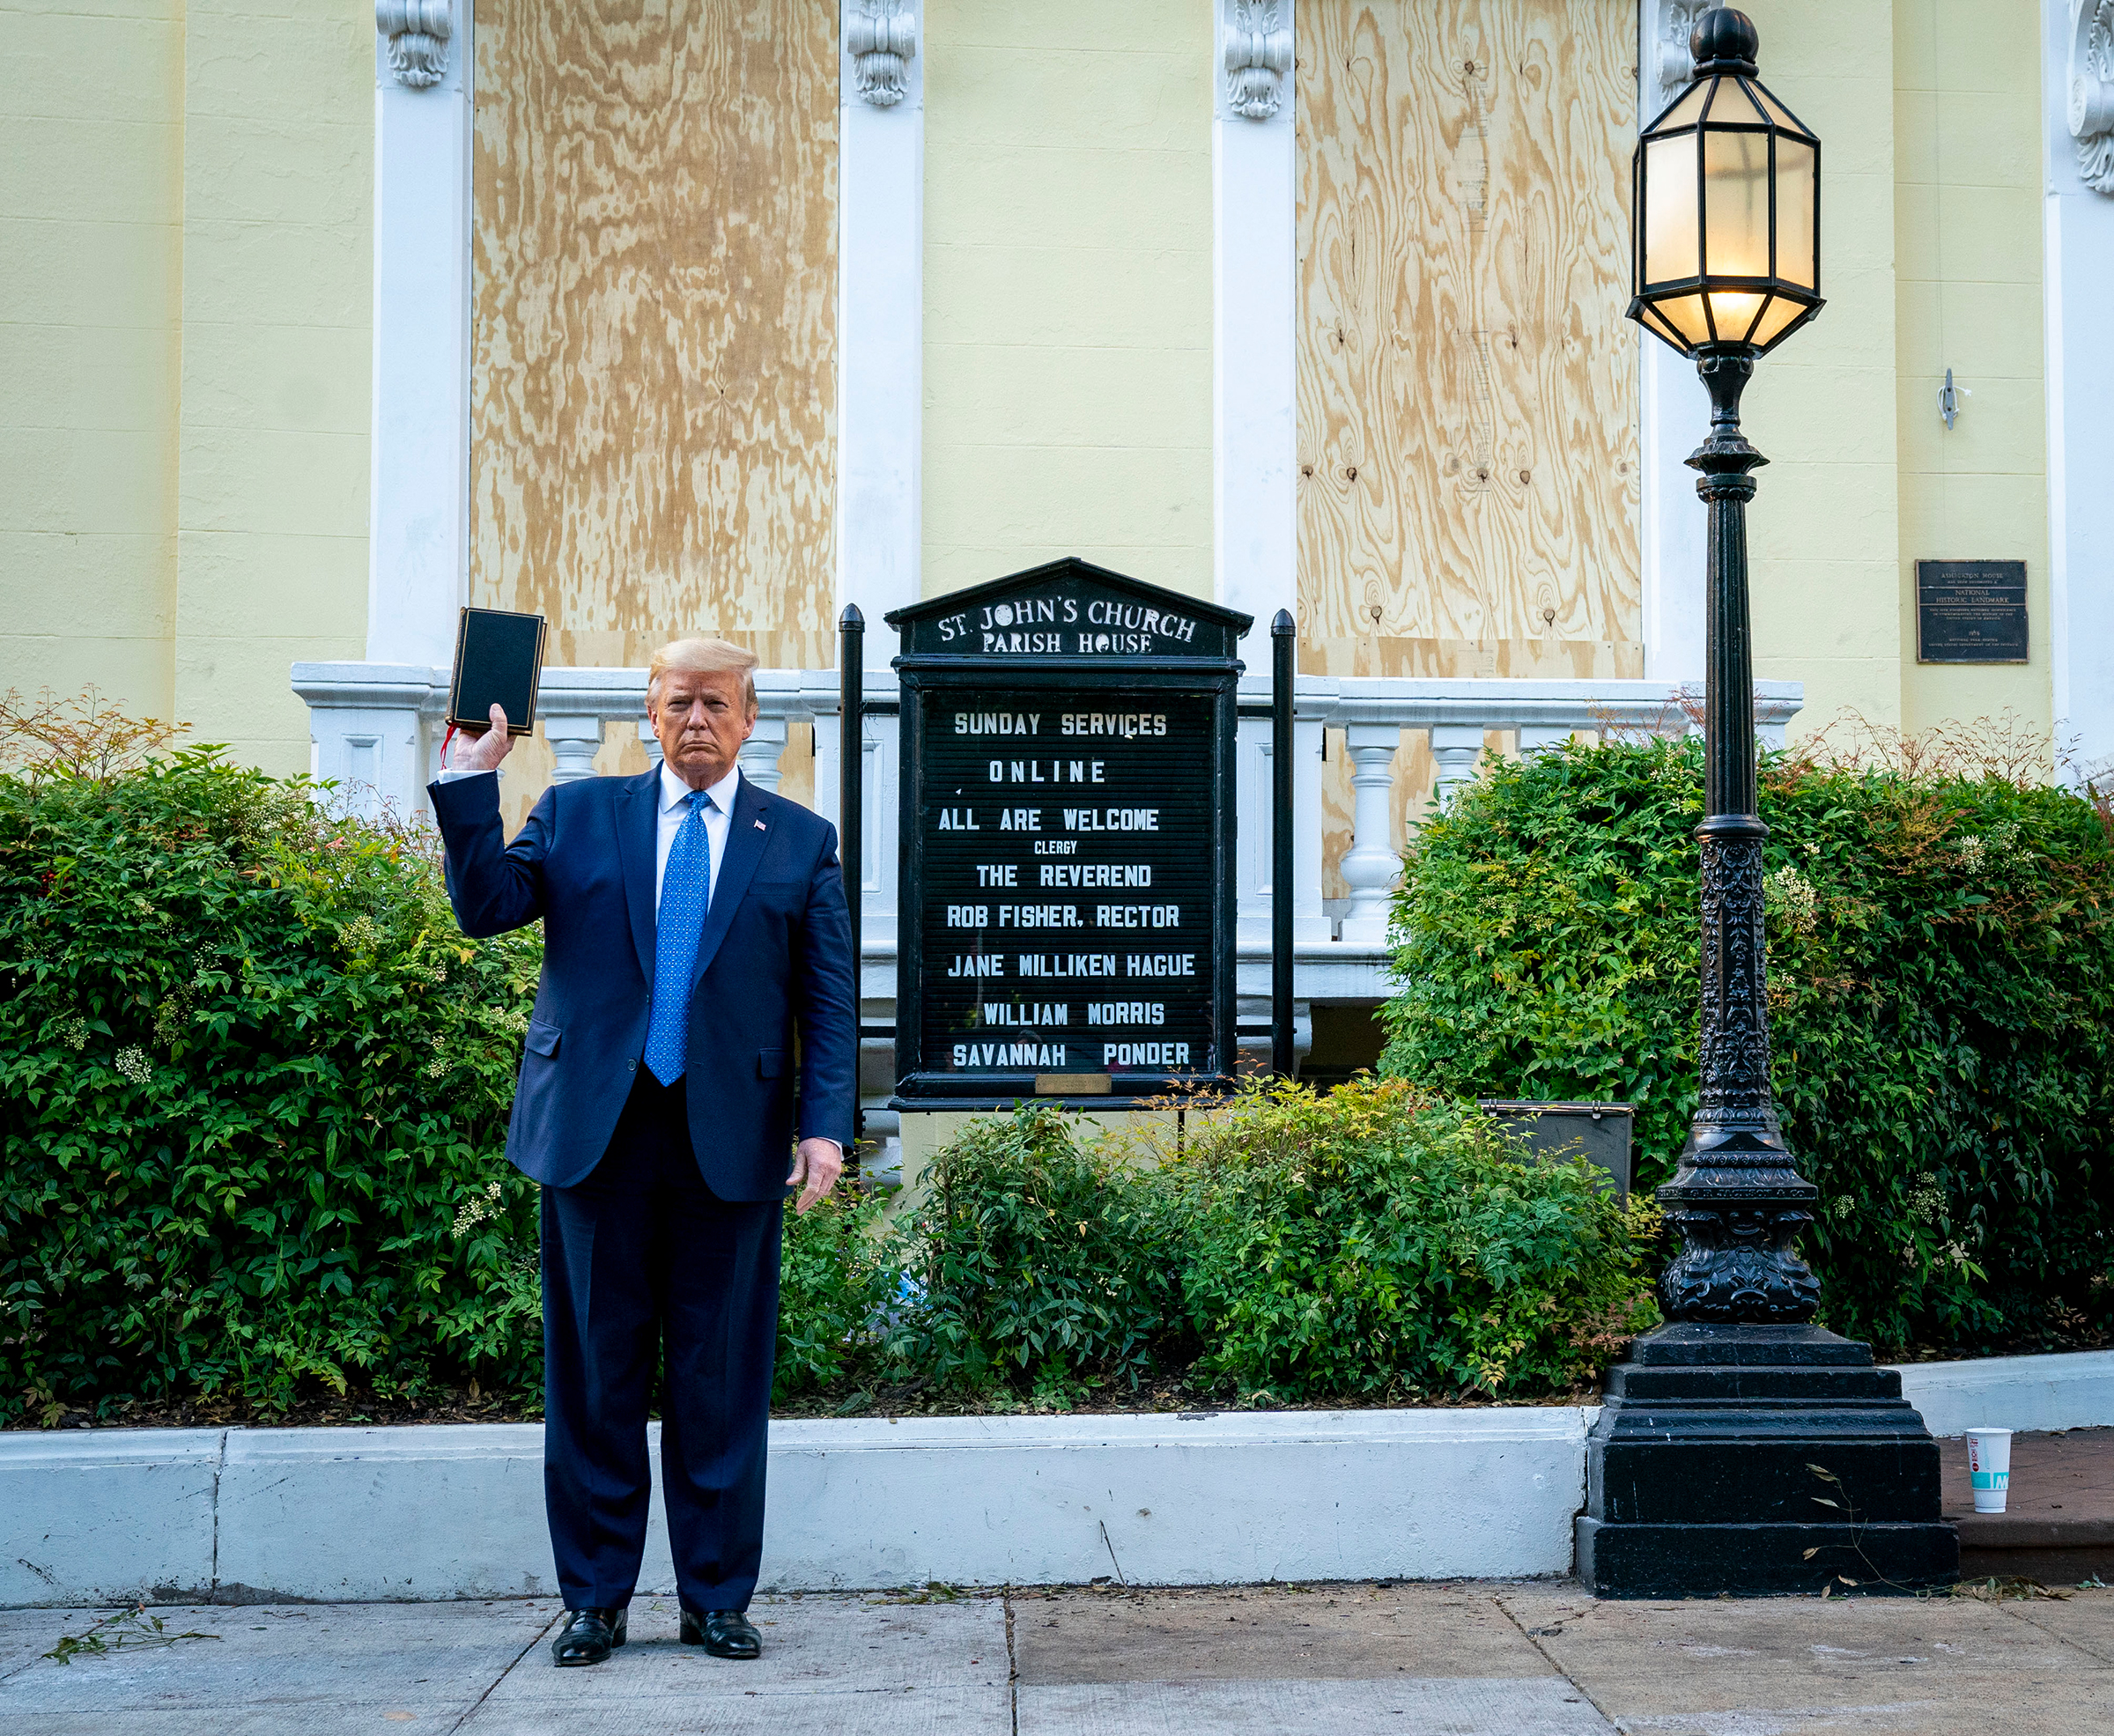 President Trump holds a Bible in front of St. John's Church in Washington, D.C., on June 1.  Trump's moment—for him to look in control of the two-block radius around his home and to stand with a Bible in front of a church—came at a huge cost,  wrote Brian Bennett,  using the full force of the federal government to quash a peaceful protest and raising echoes of martial law.